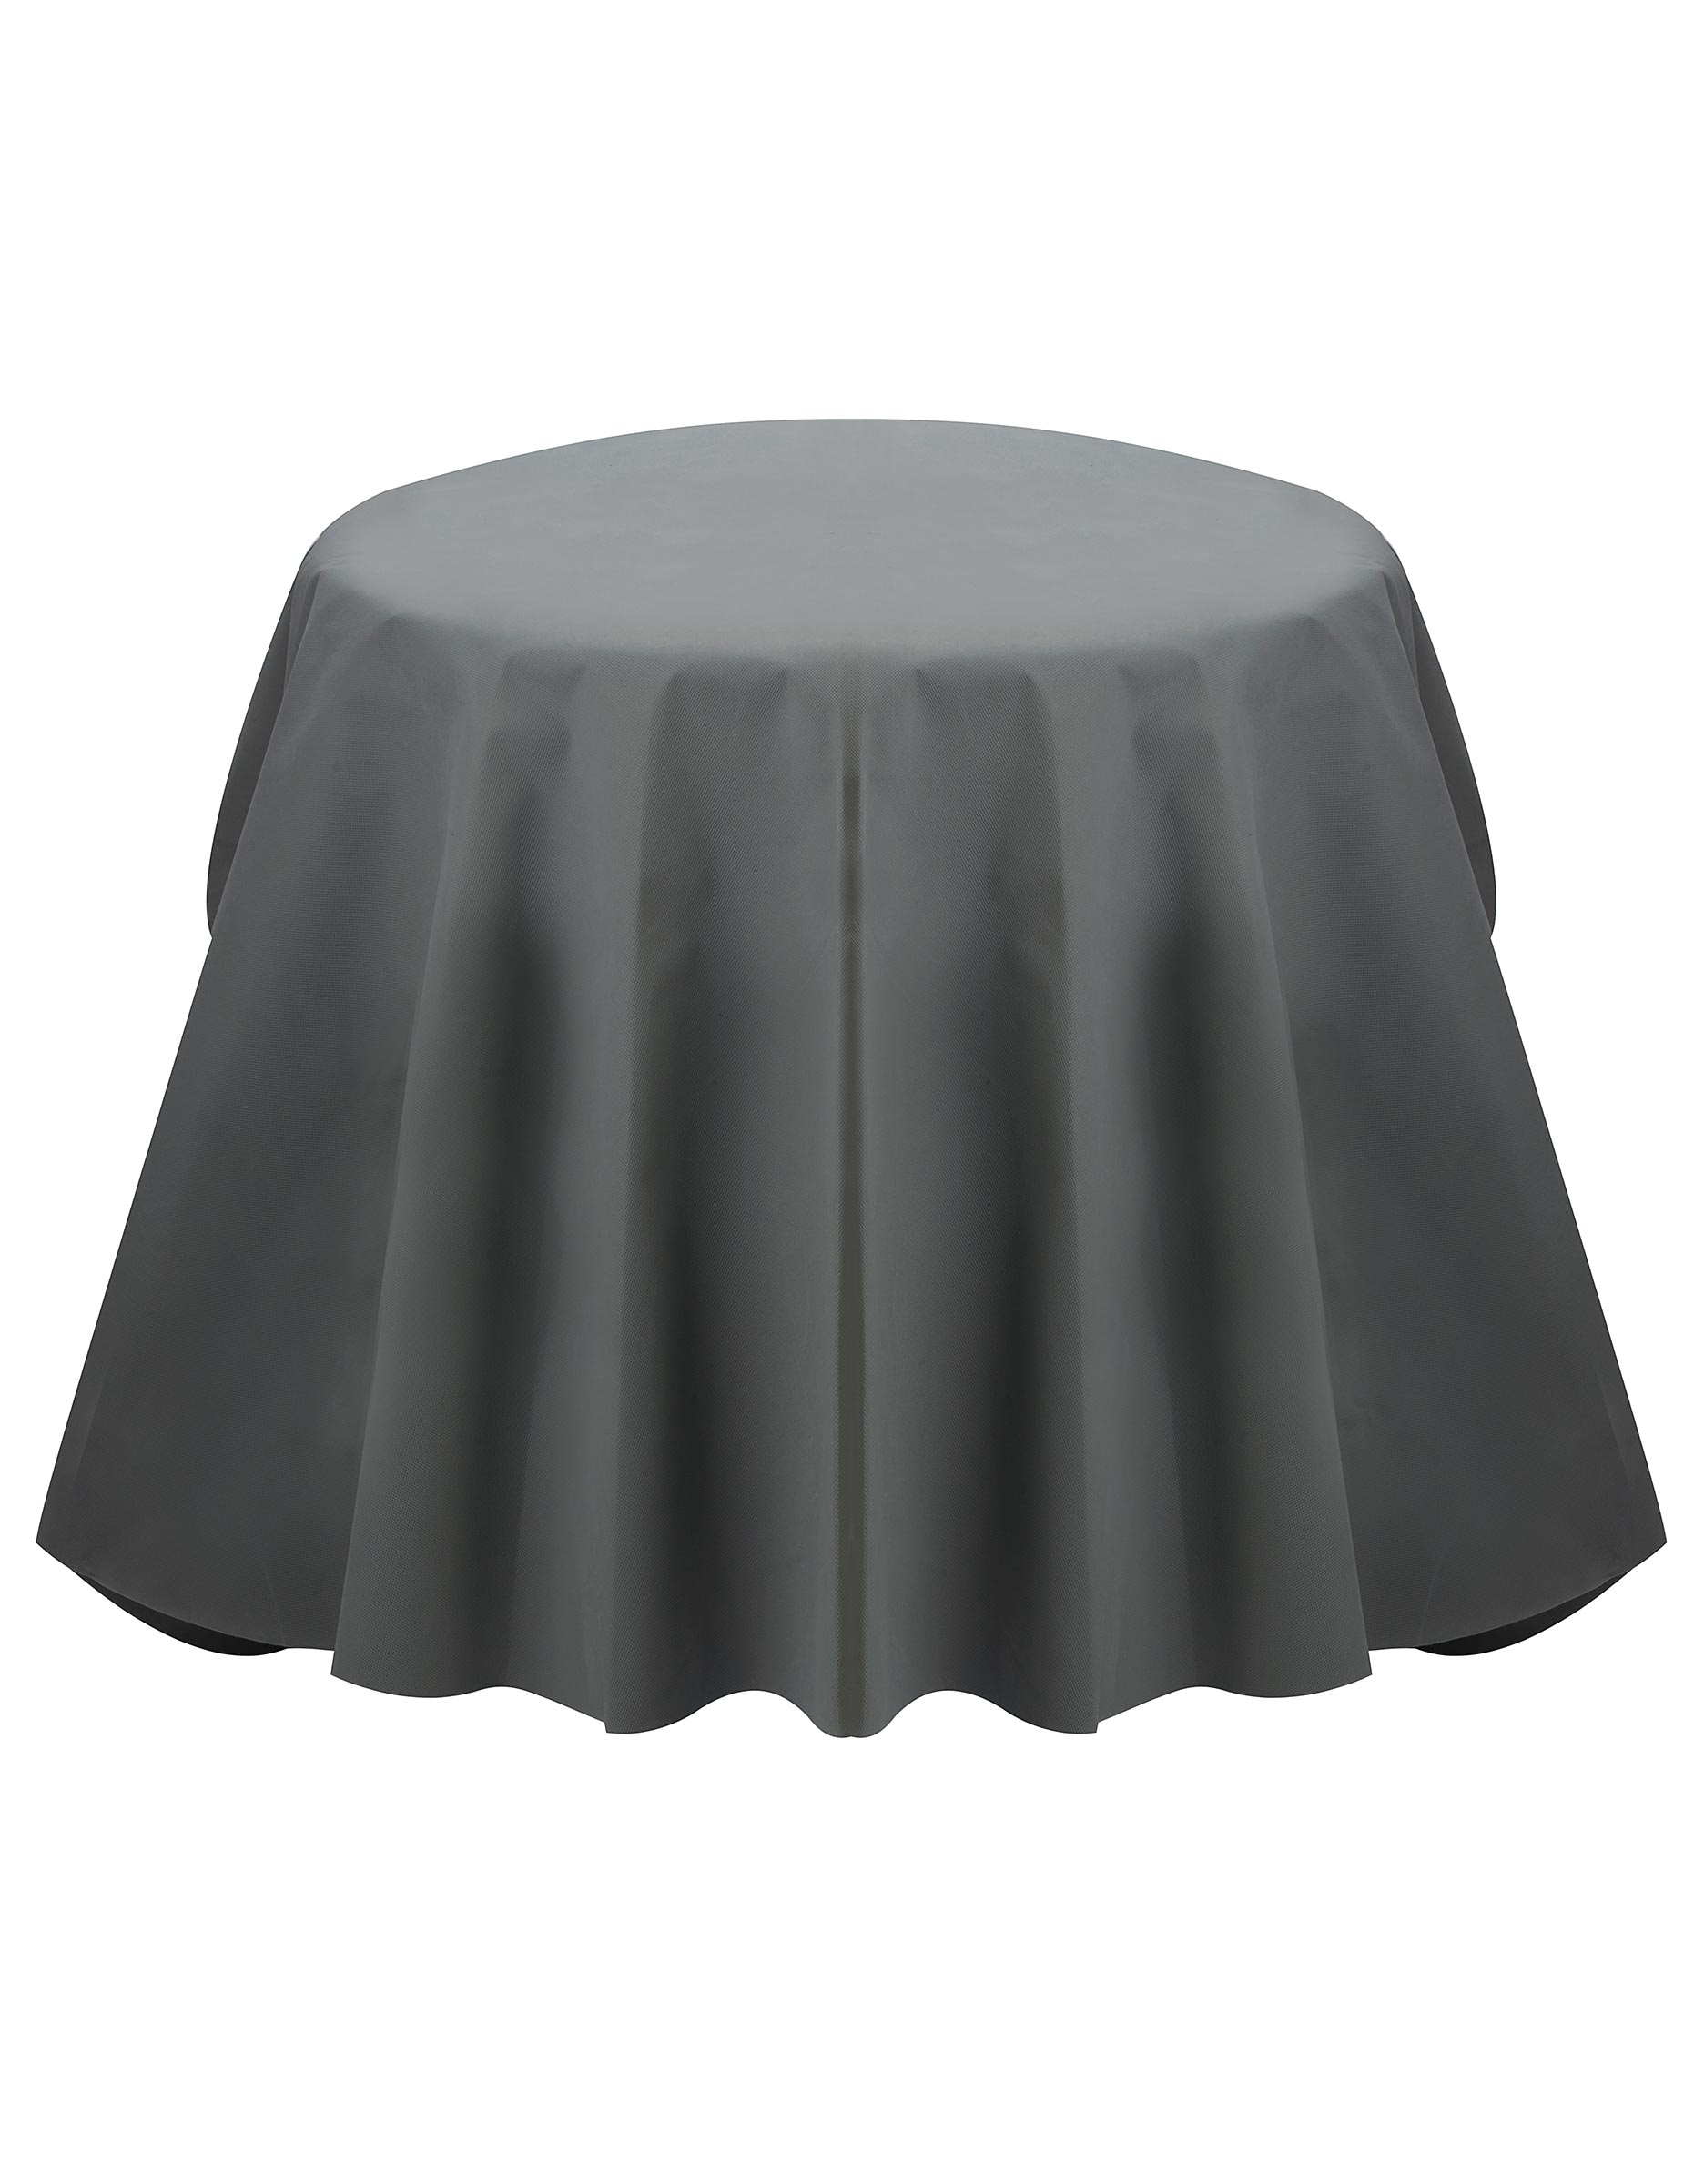 nappe ronde grise opaque d coration anniversaire et f tes th me sur vegaoo party. Black Bedroom Furniture Sets. Home Design Ideas